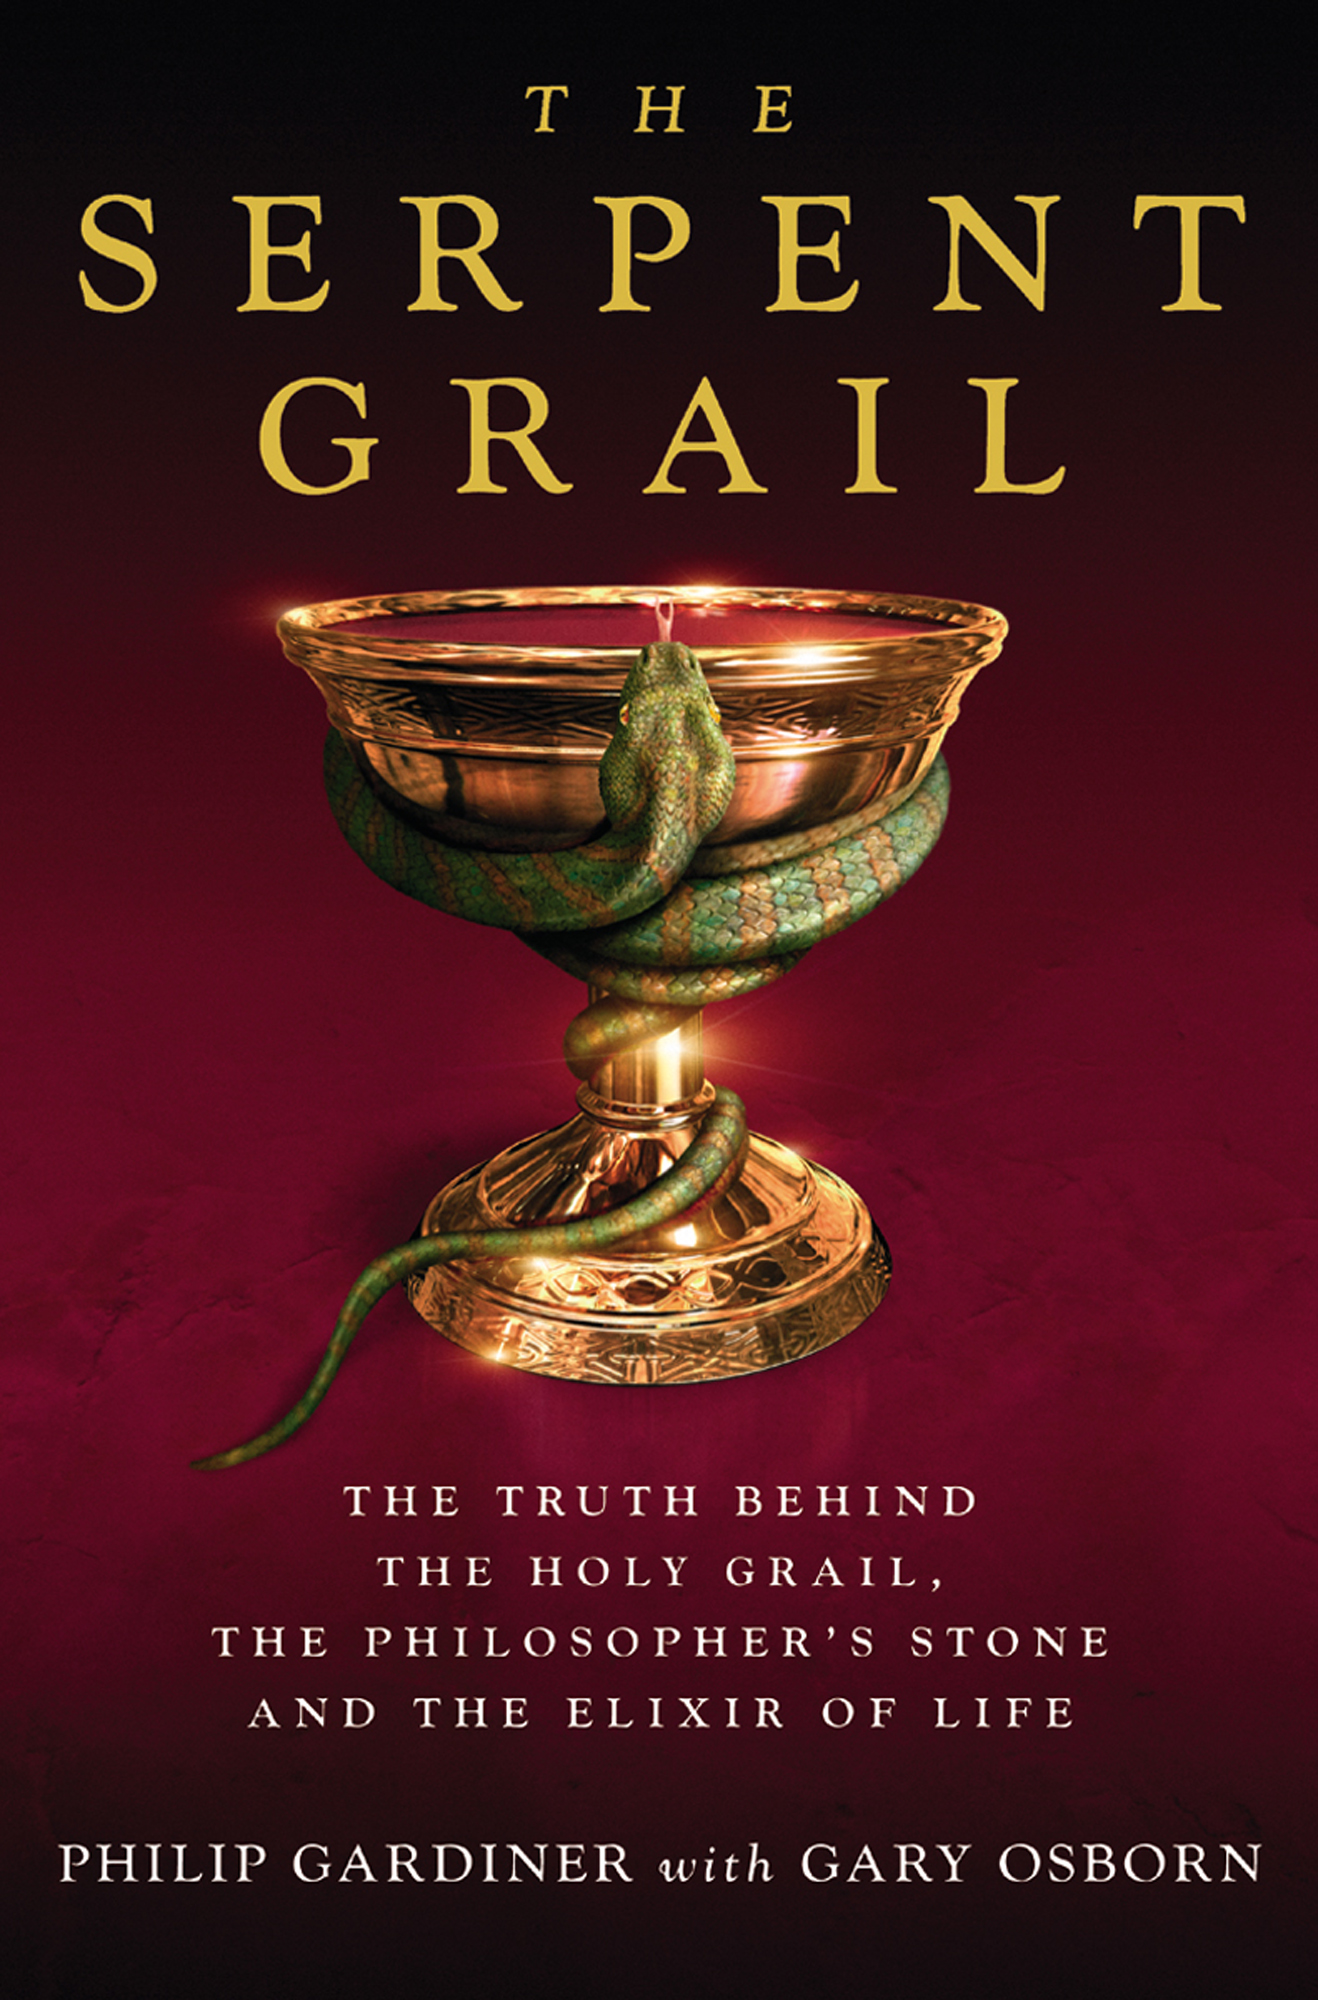 The Serpent Grail - The Truth Behind The Holy Grail,  The Philosopher's Stone and The Elixir of Life